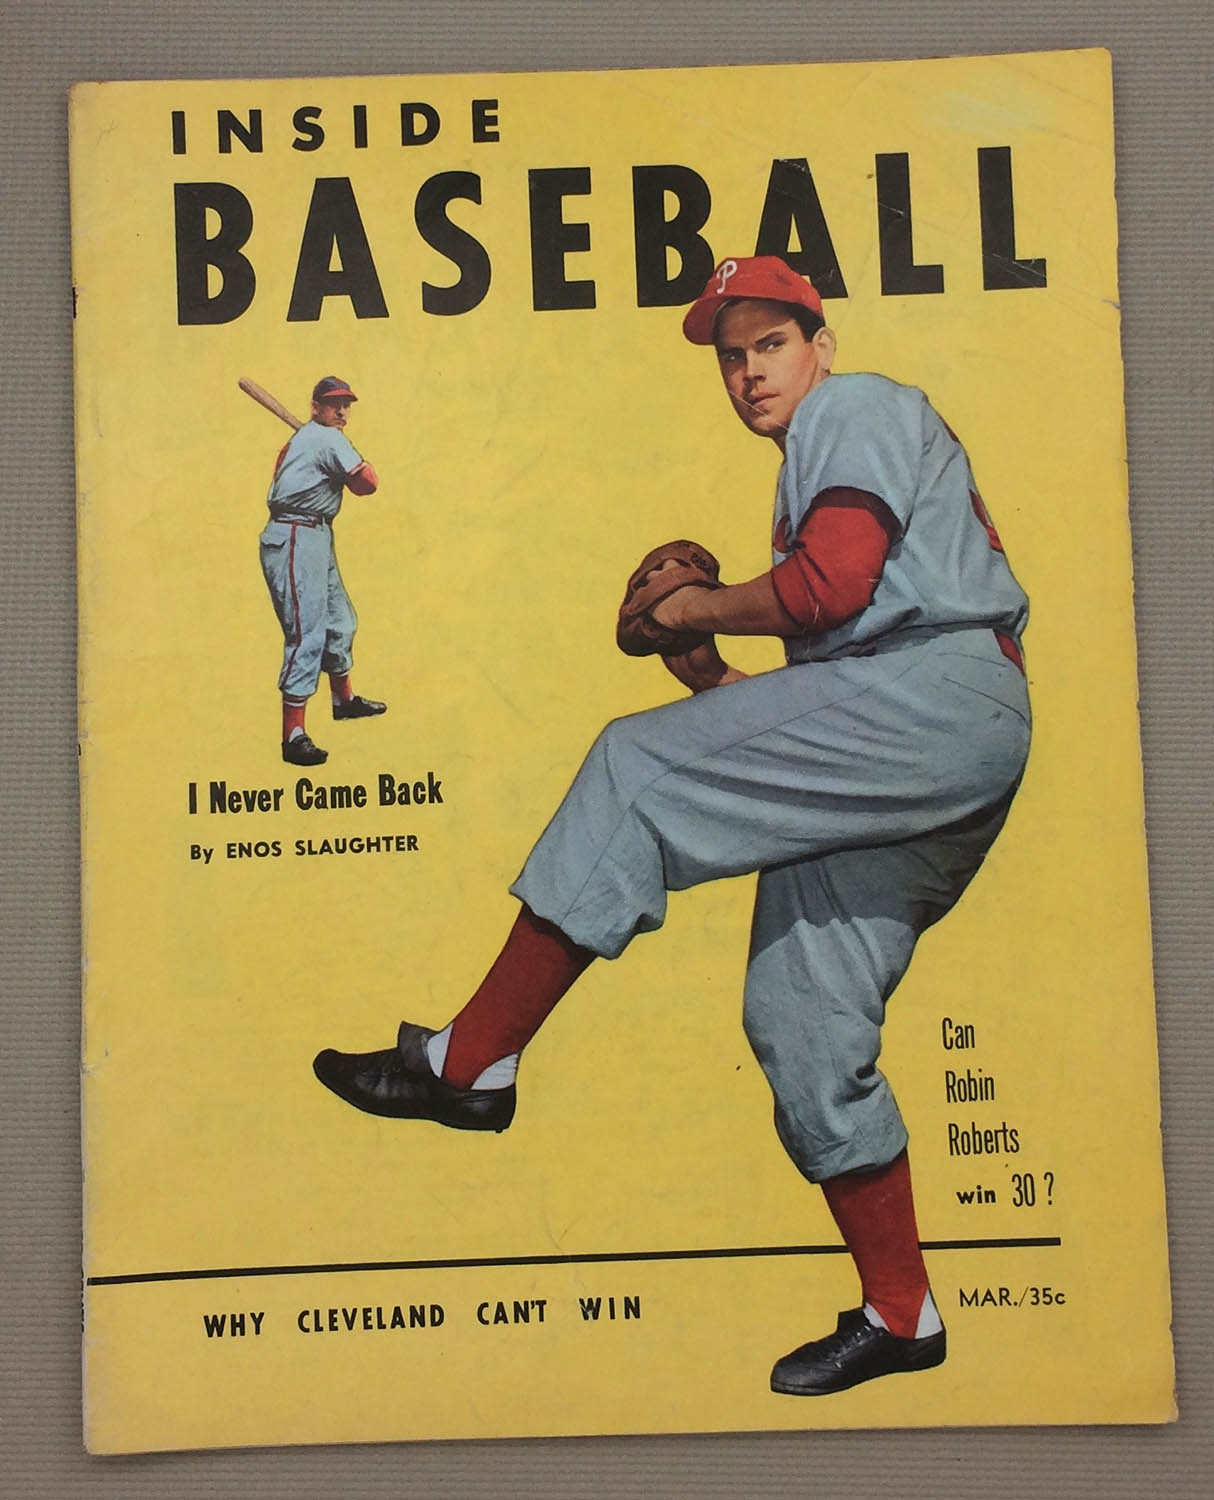 Inside baseball March 1953 Issue